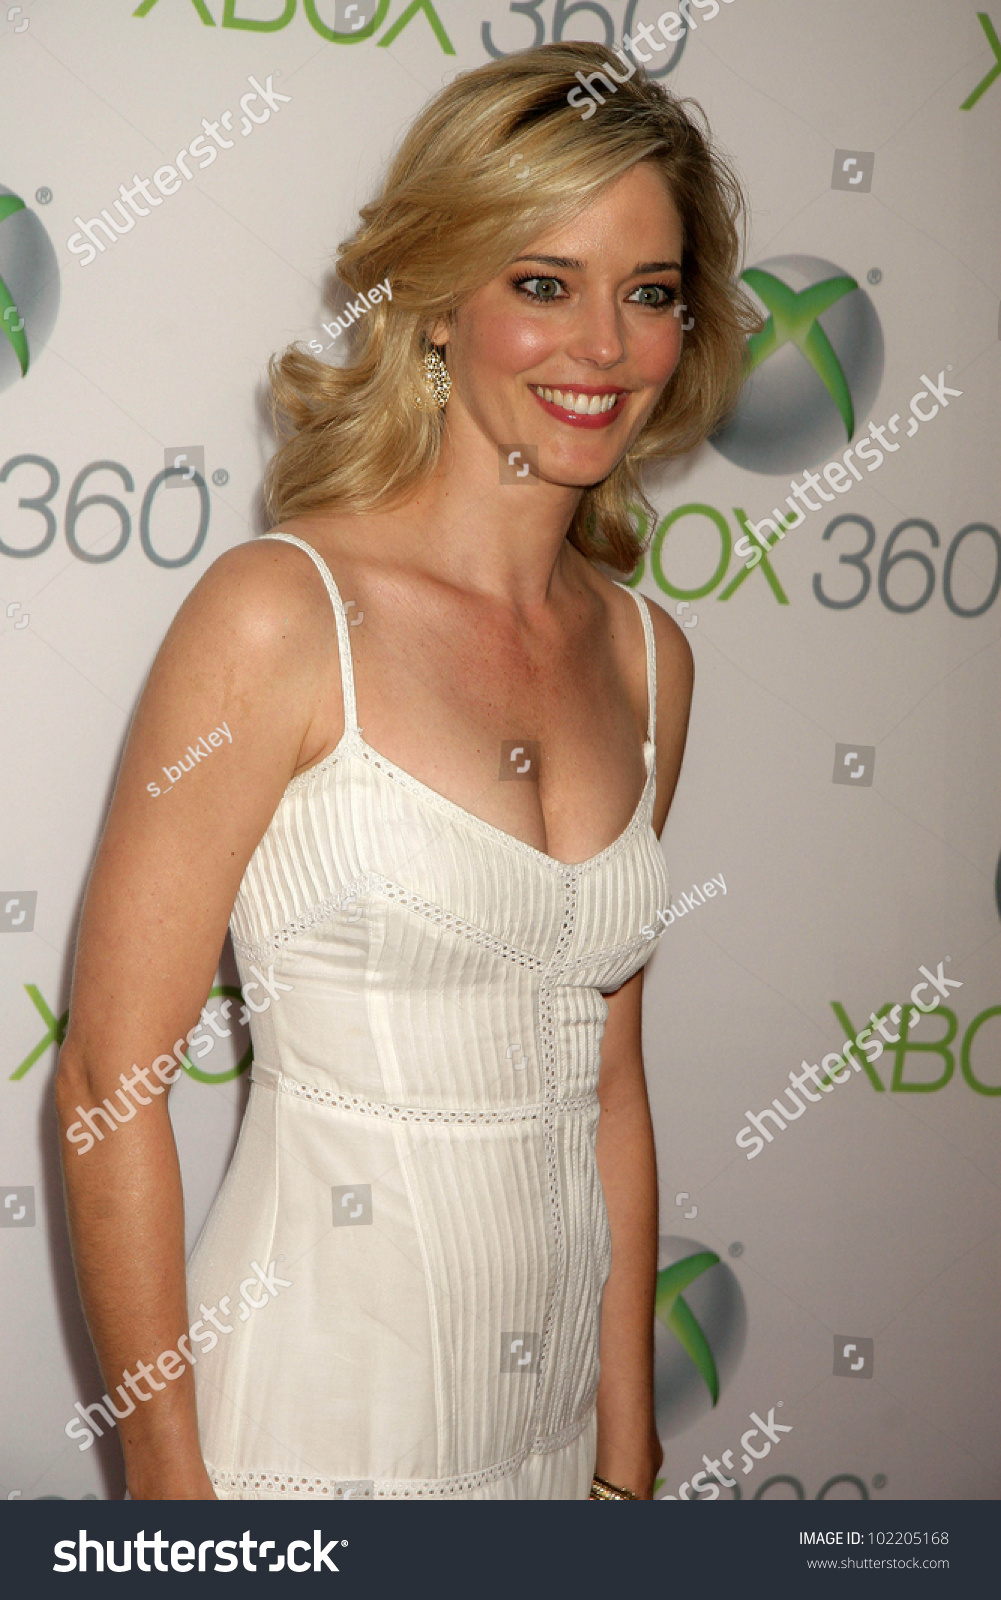 Forum on this topic: Billie Piper (born 1982), christina-moore/